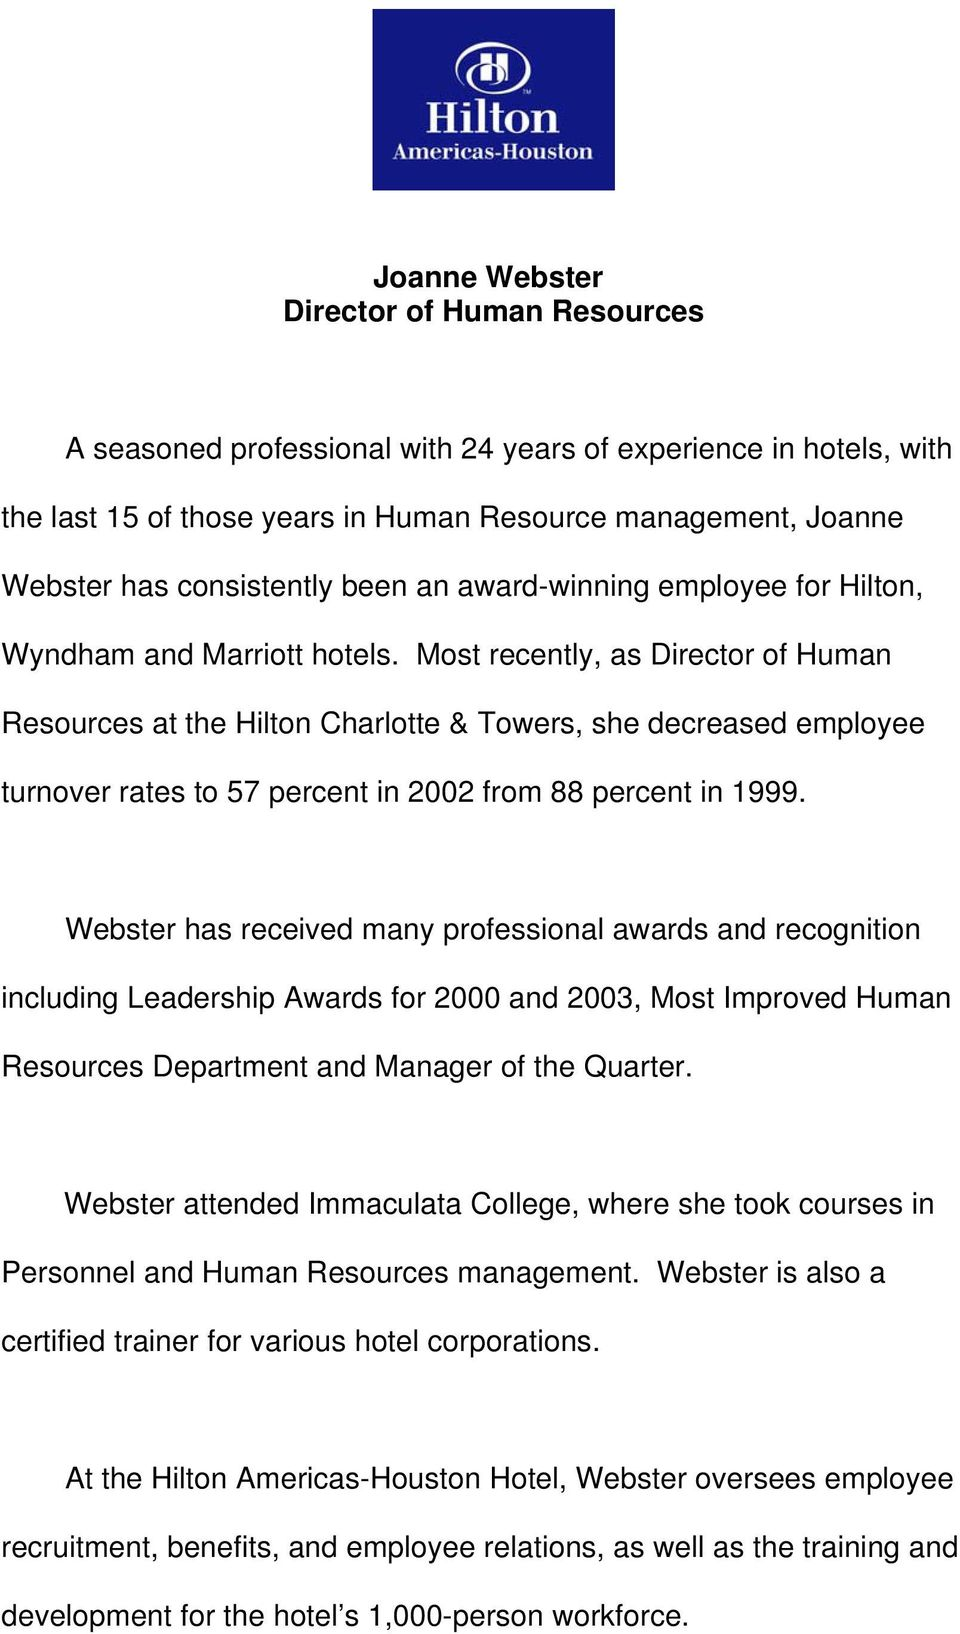 Most recently, as Director of Human Resources at the Hilton Charlotte & Towers, she decreased employee turnover rates to 57 percent in 2002 from 88 percent in 1999.